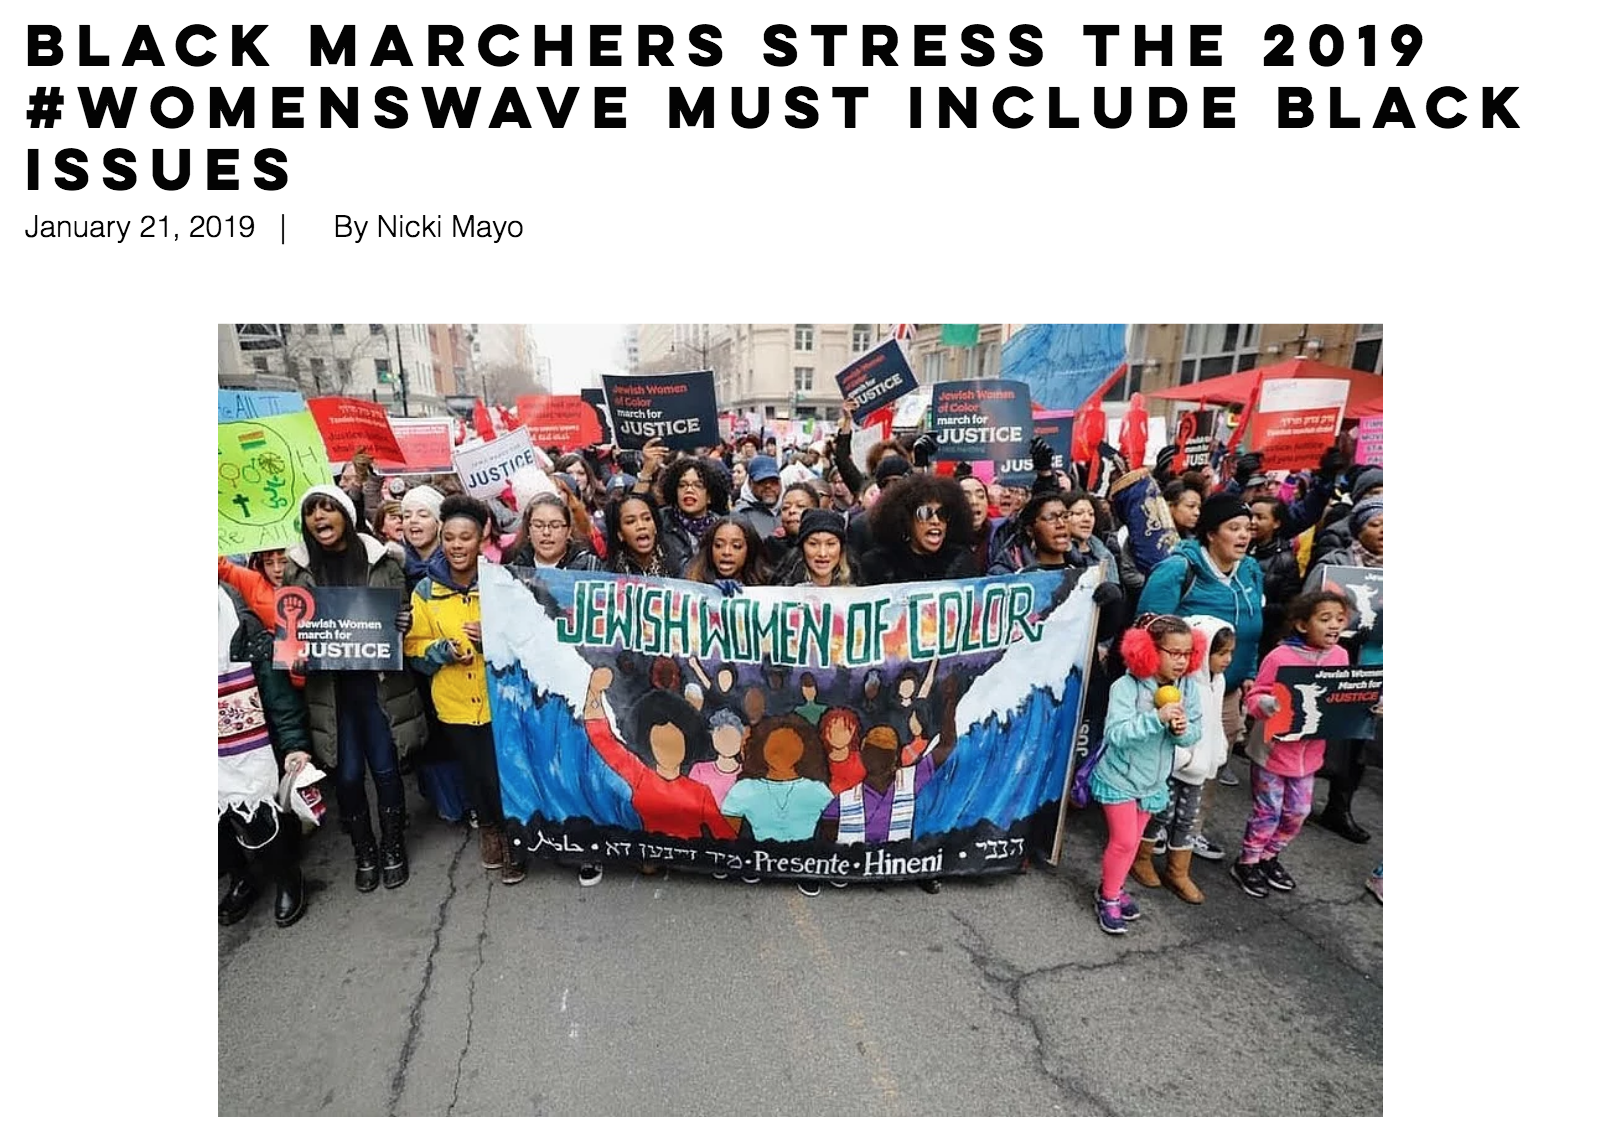 01/21/19: Black marchers stress the 2019 #WomensWave must include Black issues